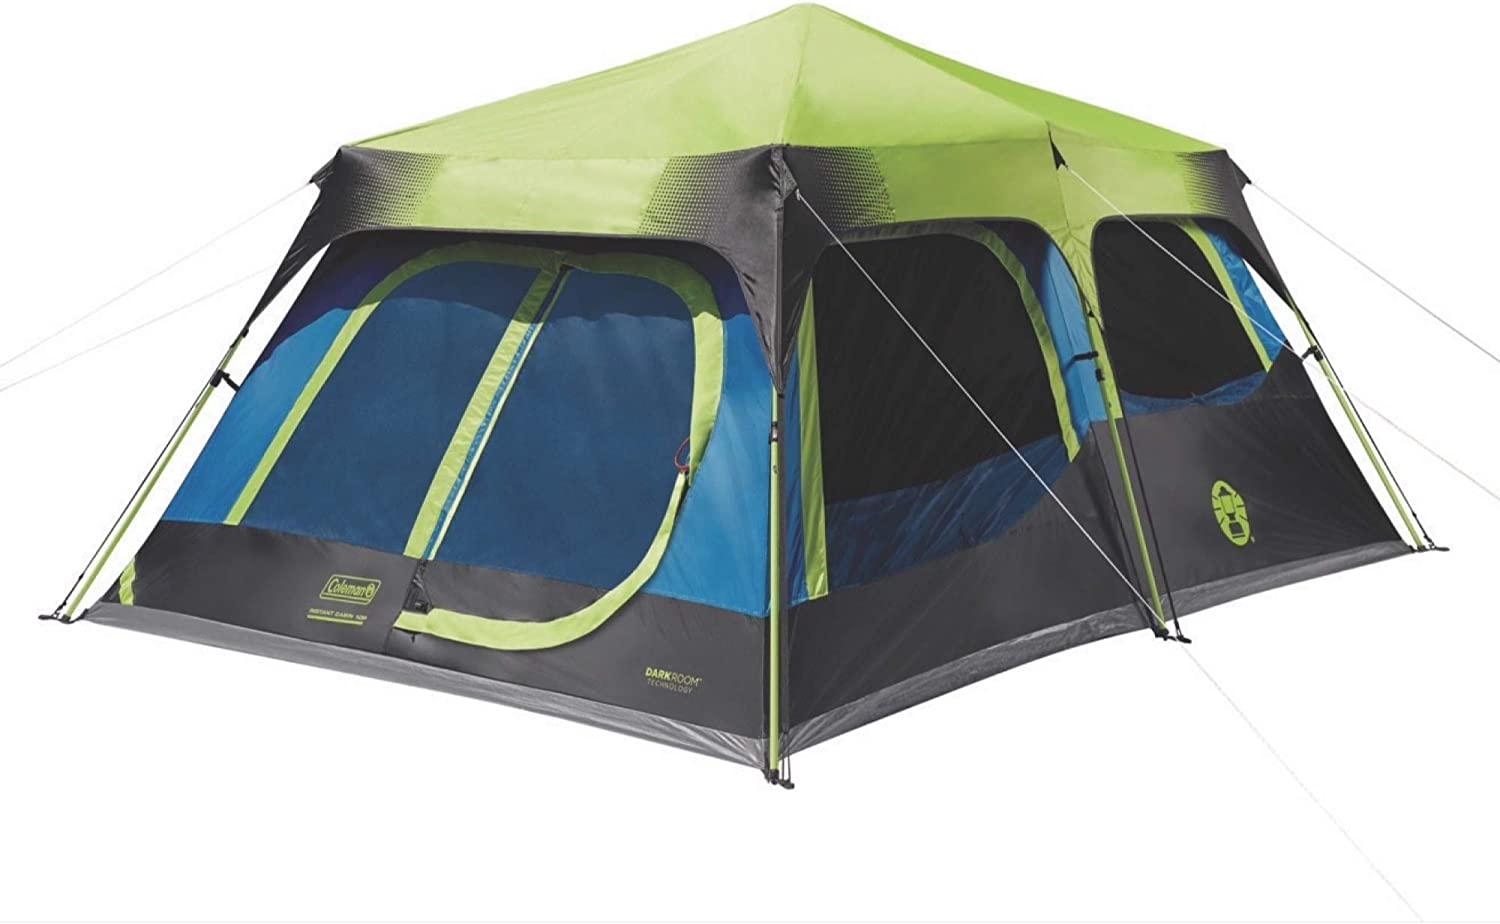 unisex Coleman Cabin Tent with Instant Setup 60 Outlet sale feature Seconds in